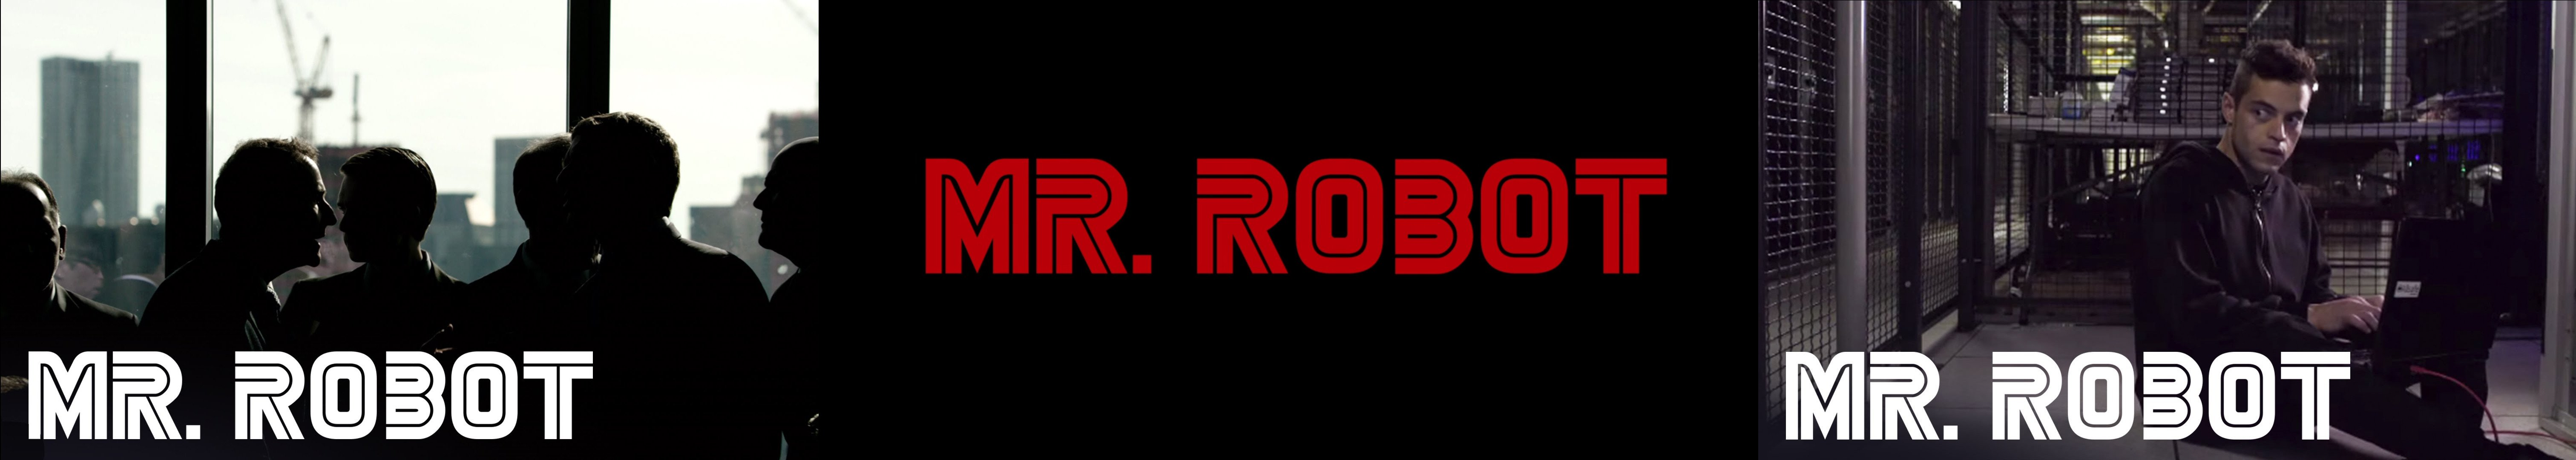 Page 2 Of Robot 4k Wallpapers For Your Desktop Or Mobile Screen